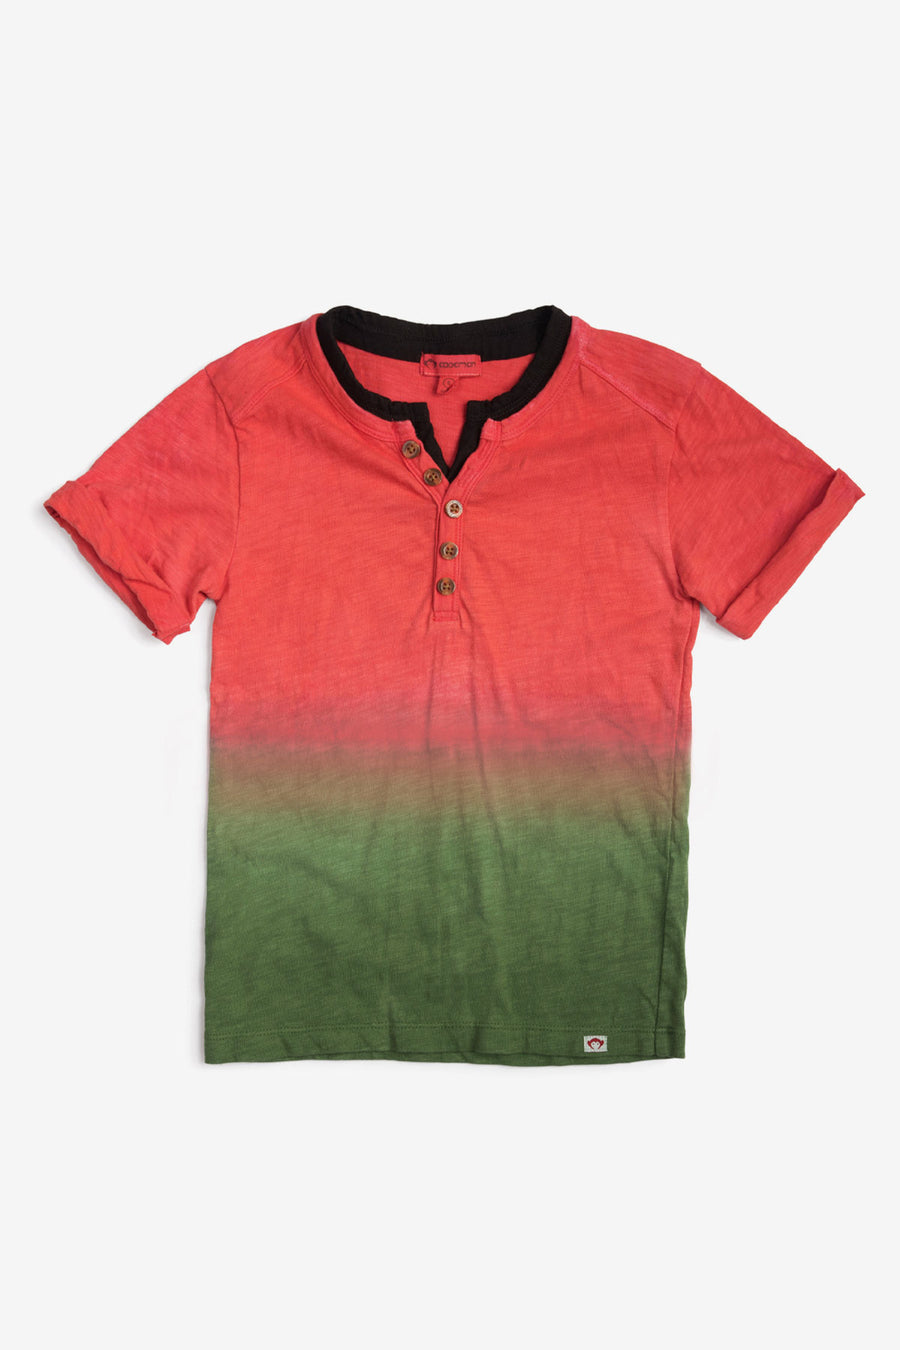 Appaman Hilltop Boys Henley Shirt - Watermelon